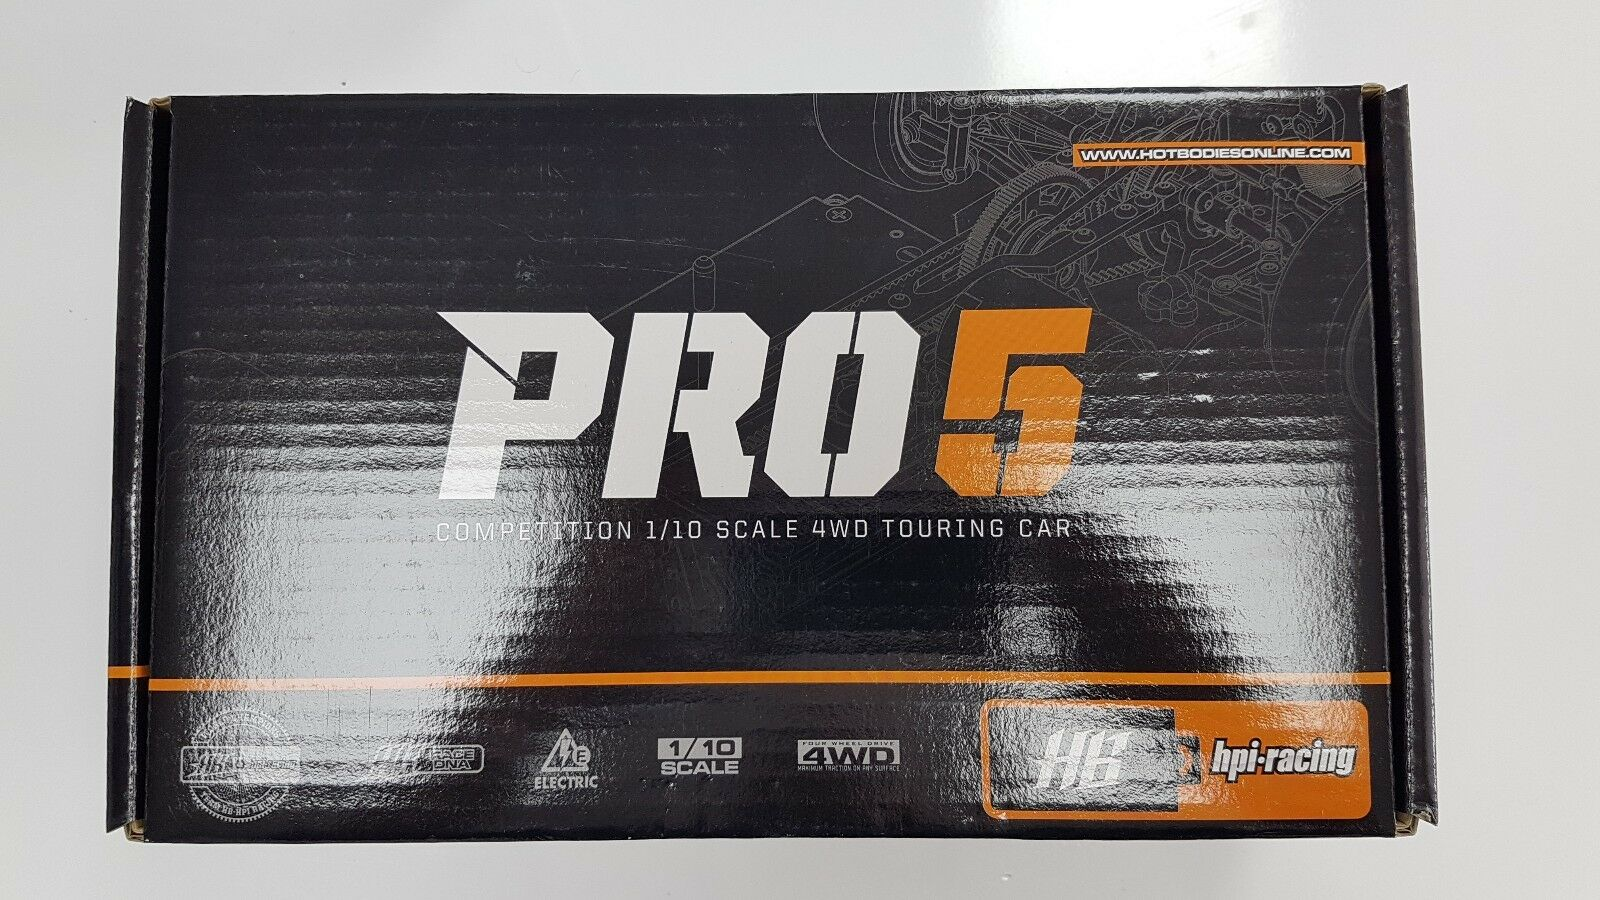 HB RACING PRO 5 1 10 COMPETITION TOURING CAR NIB - FREE SHIPPING